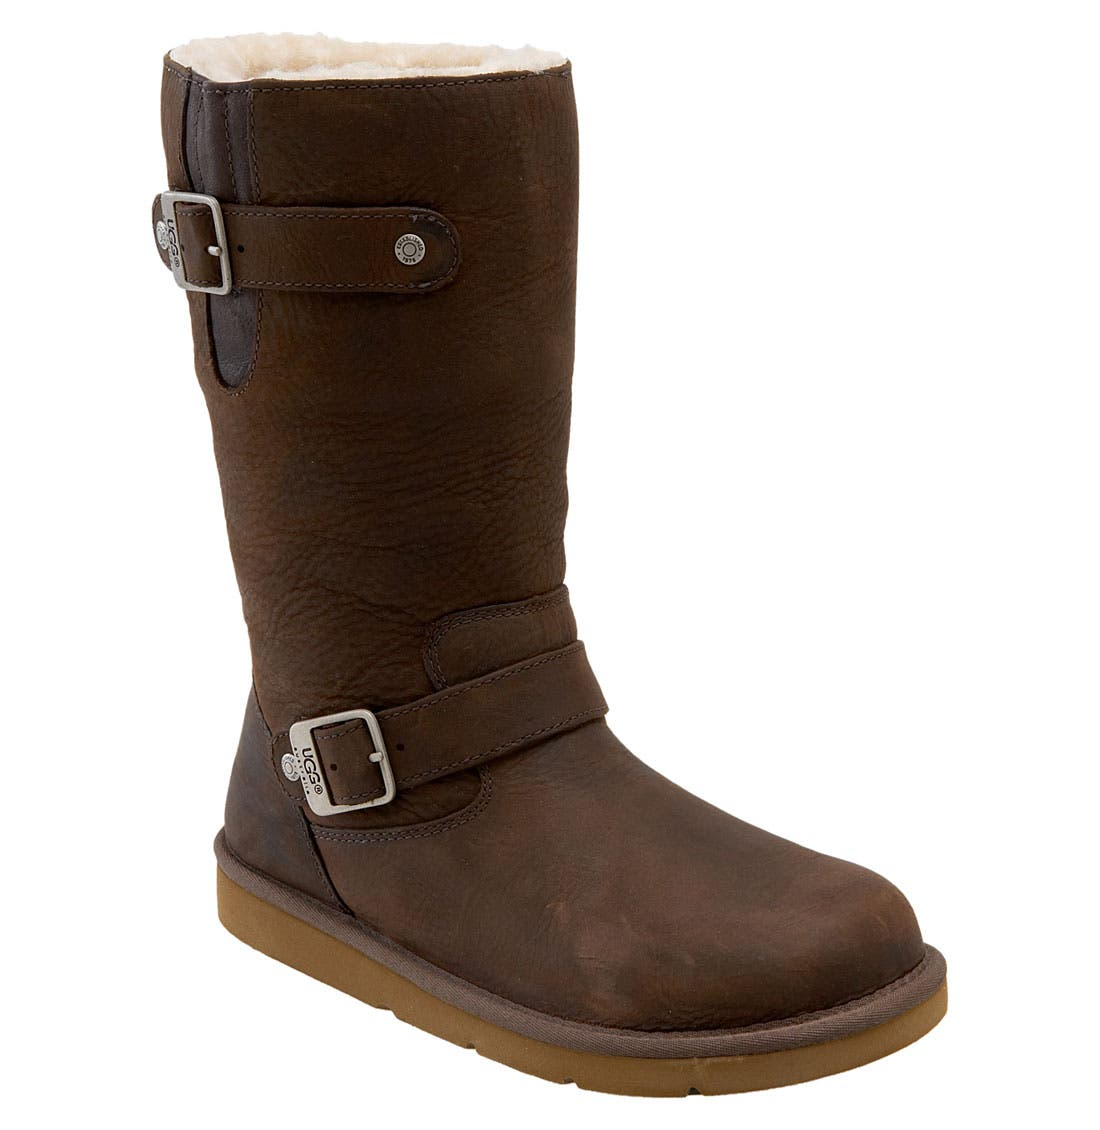 Free shipping and returns on women's boots at bauernhoftester.ml, including riding, knee-high boots, waterproof, weatherproof and rain boots from the best brands - UGG, Timberland, Hunter and more.